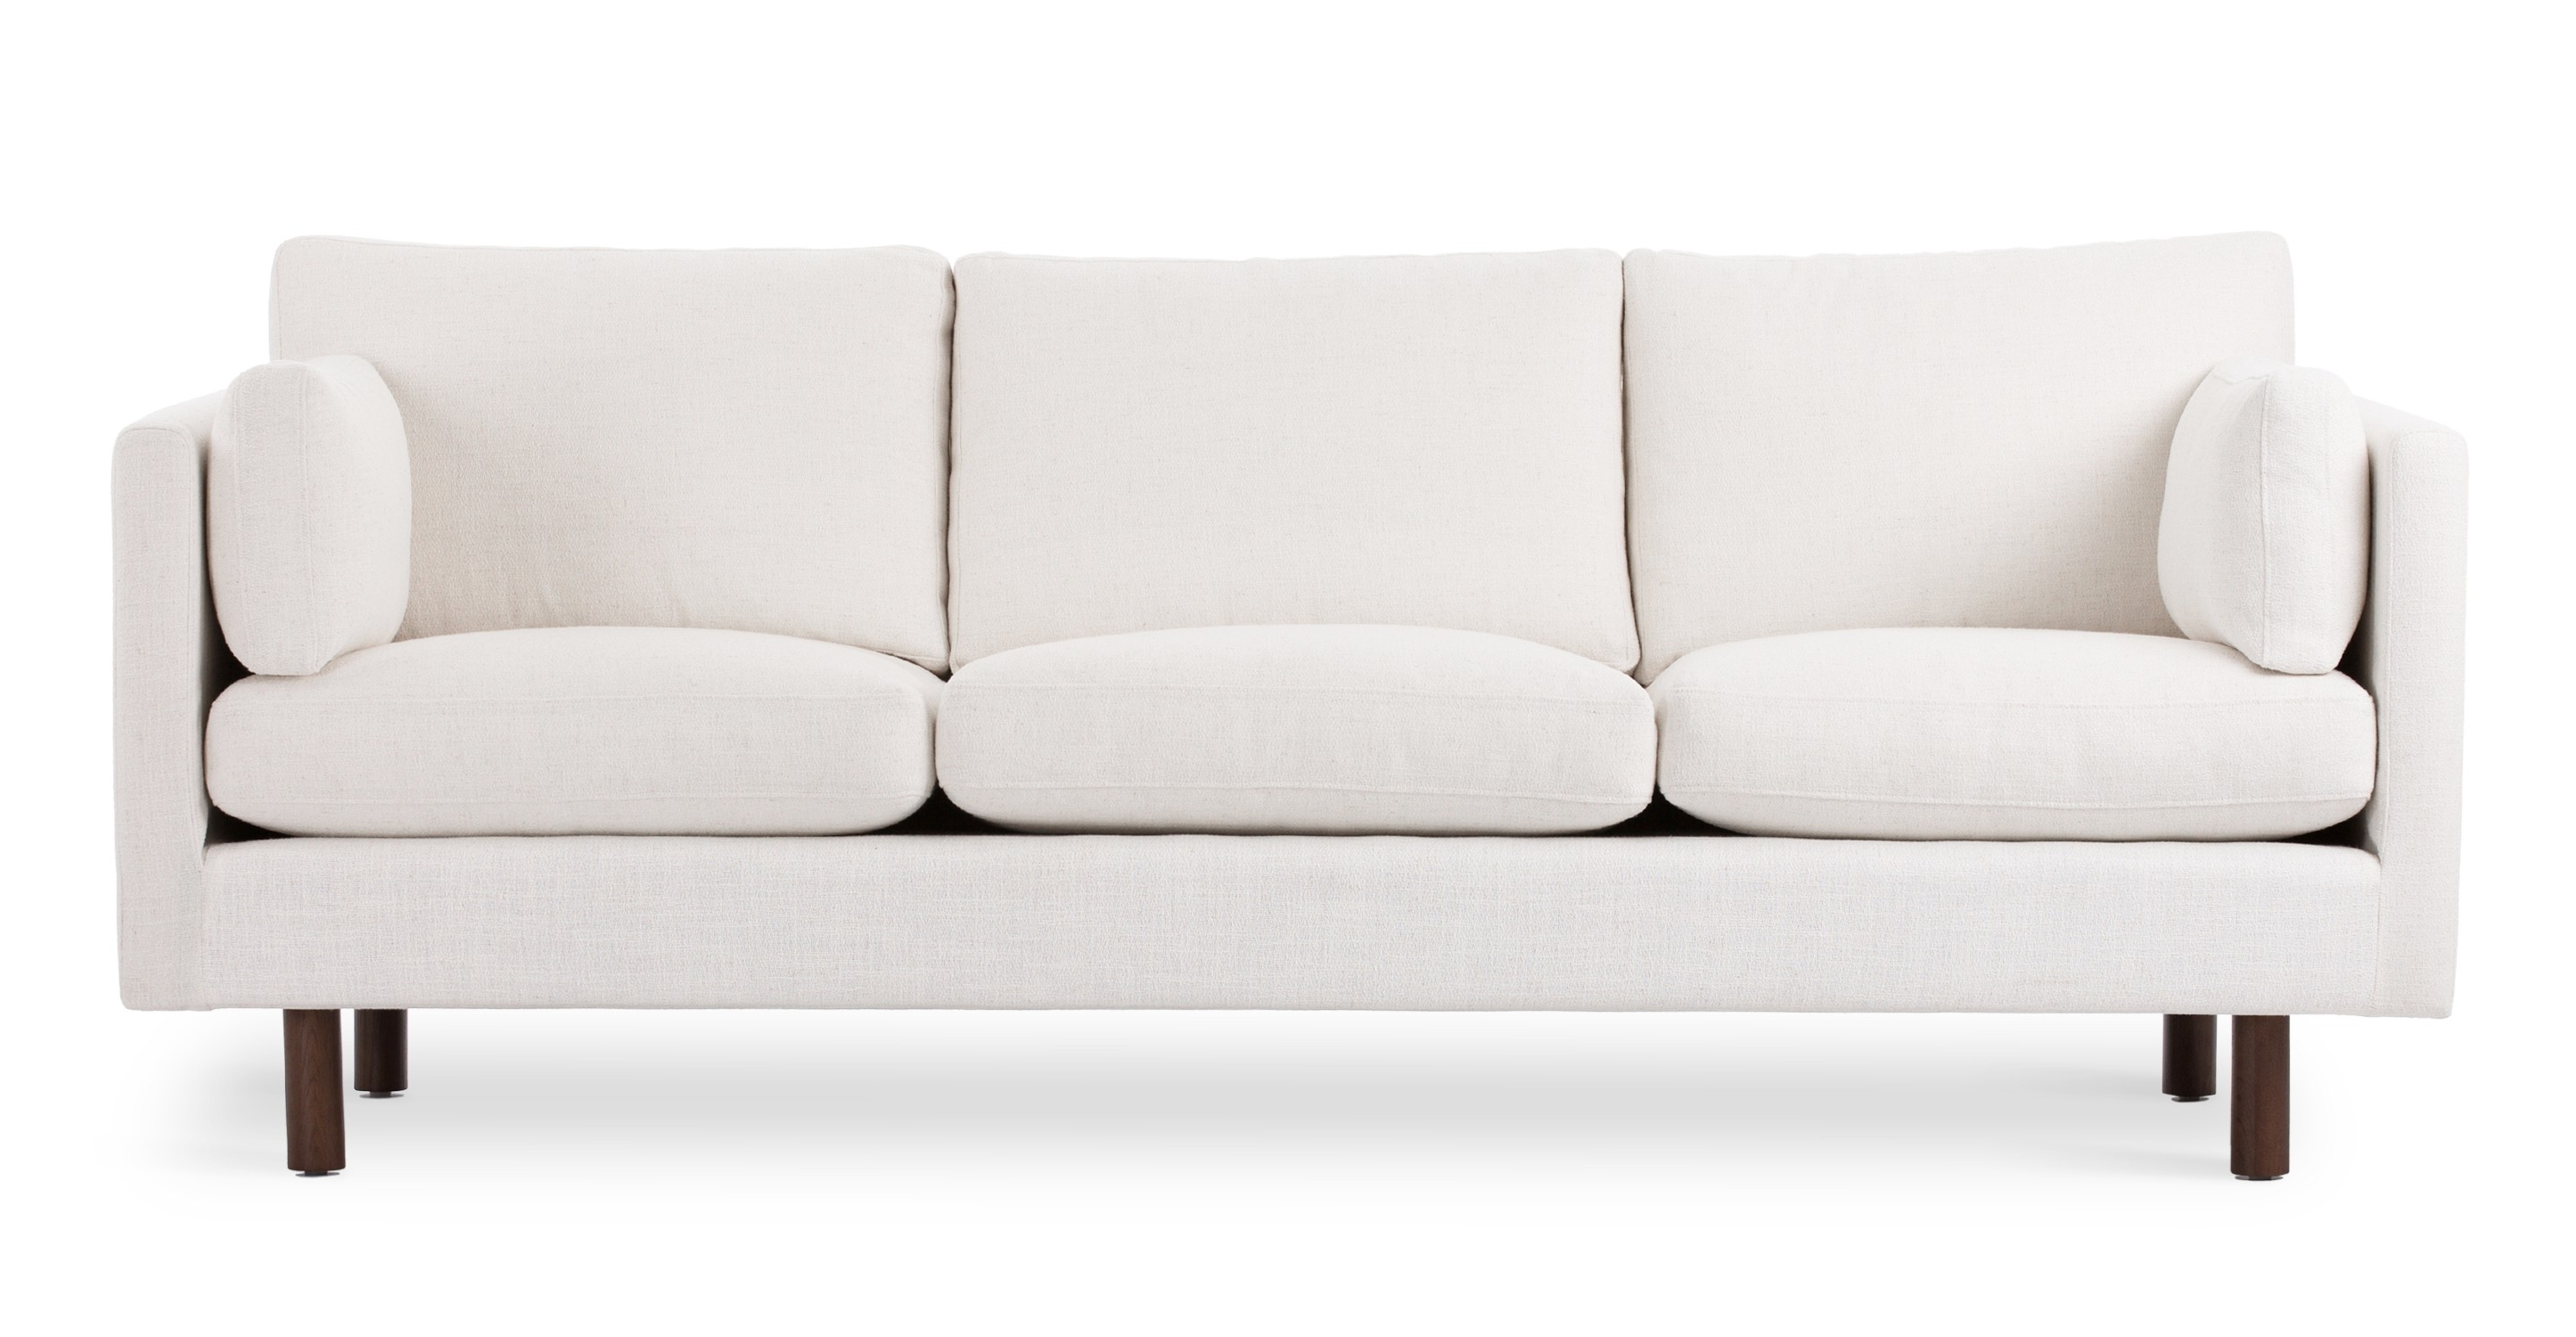 Popular White Modern Sofas With Regard To Unique White Sofas 32 In Modern Sofa Inspiration With White Sofas (View 11 of 20)